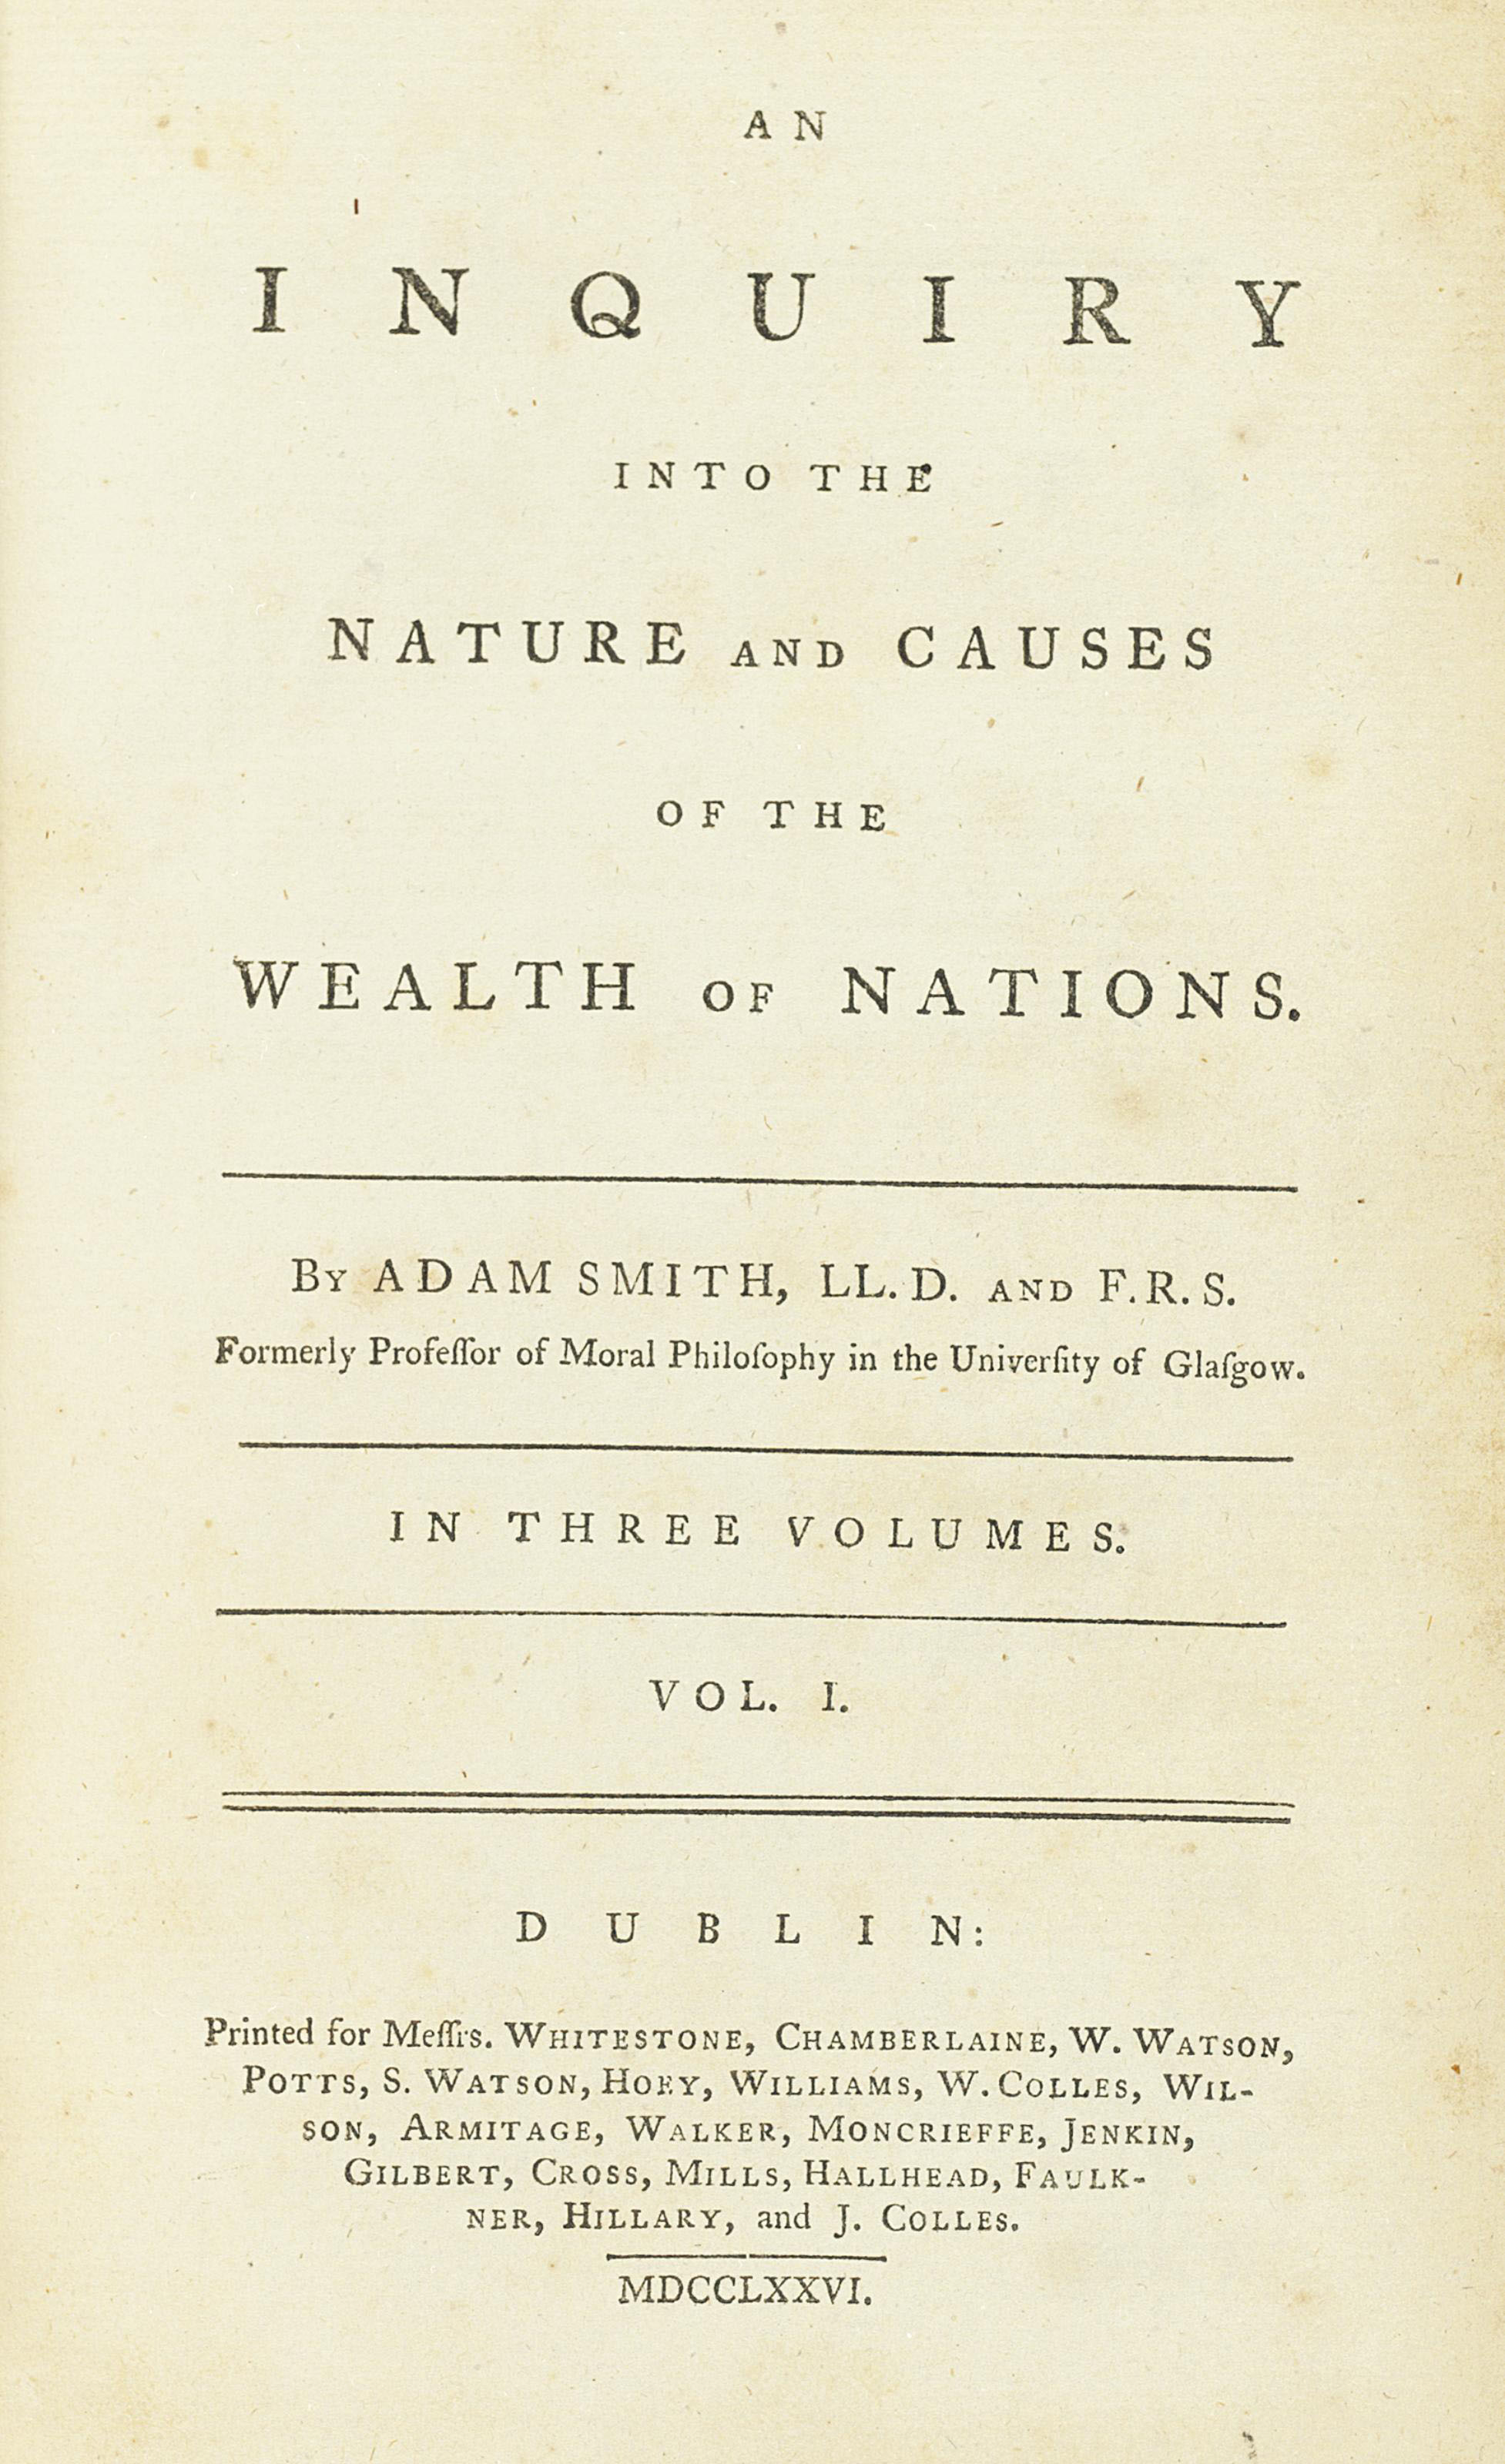 SMITH, Adam (1723-90). An Inquiry into the Nature and Causes of the Wealth of Nations. Dublin: printed for Messrs. Whitestone, Chamberlaine, W. Watson, Potts, S. Watson and others, 1776. 3 volumes, 8° (212 x 130mm). Half-title to vol. I and 3pp. advertisement in vol. II. (Occasional scattered spots and light browning.) Contemporary calf, green edges (rebacked and recornered preserving old labels on spine, extremities lightly rubbed). Provenance: John Ashworth, Manchester (ownership inscription) -- J. Morewood (ownership inscription dated 1784).